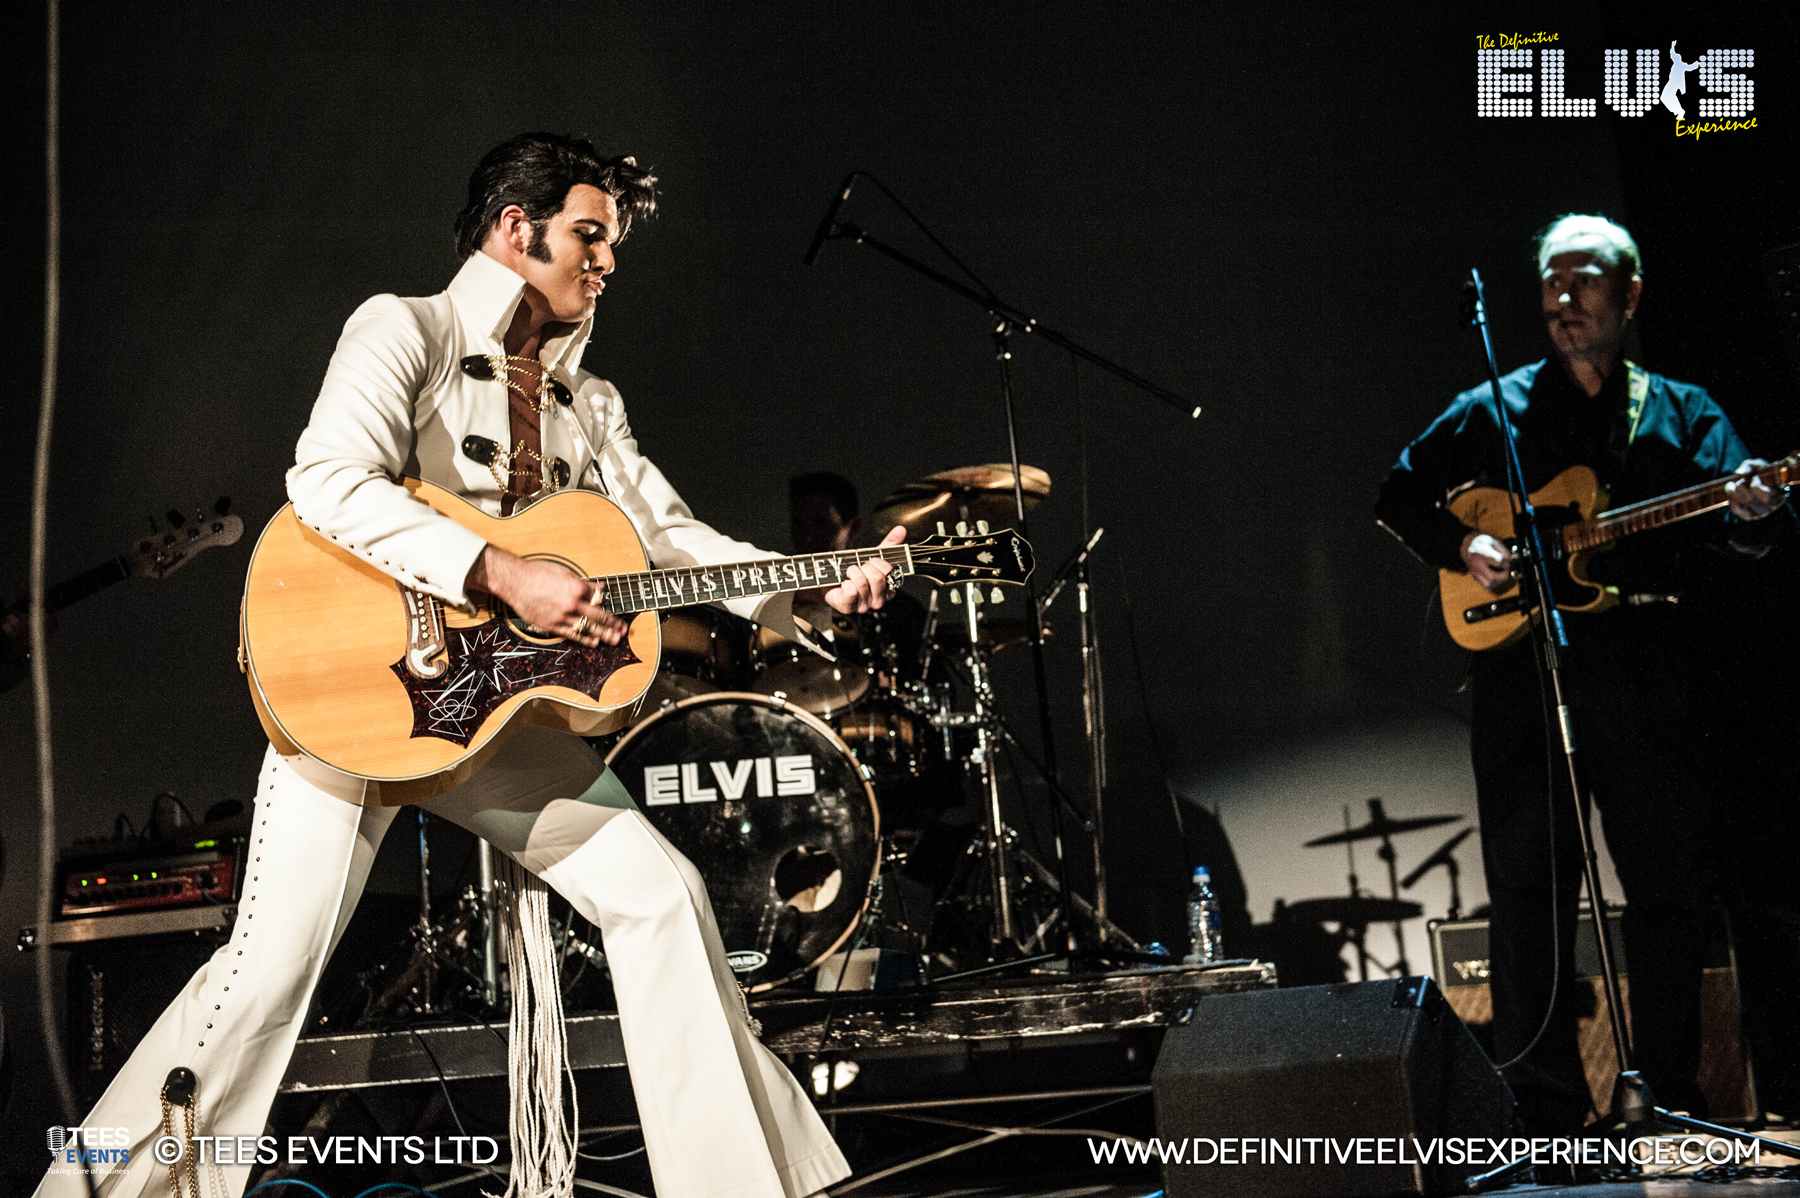 The Definitive Elvis Experience Ben Thompson